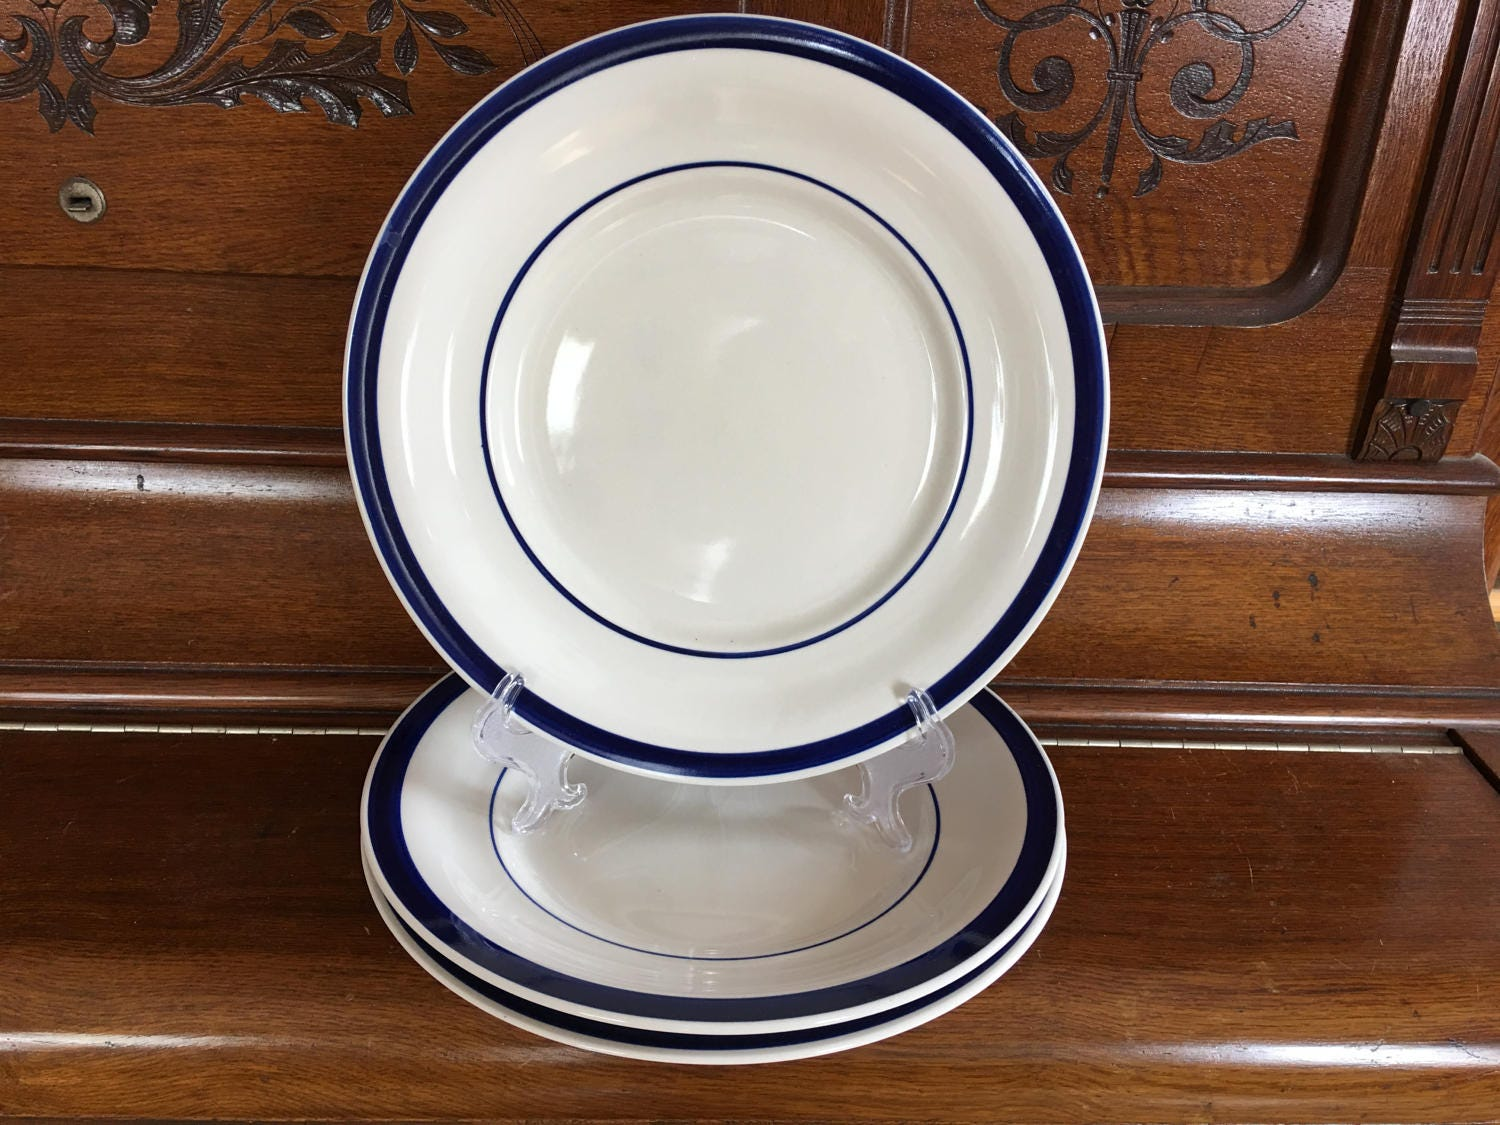 Farberware Trattoria Blue Dinner Plate Set of 3 Cobalt Blue Trim Deep Dish Pattern 4372 China Plates Replacement Plates White and Blue & Farberware Trattoria Blue Dinner Plate Set of 3 Cobalt Blue Trim ...